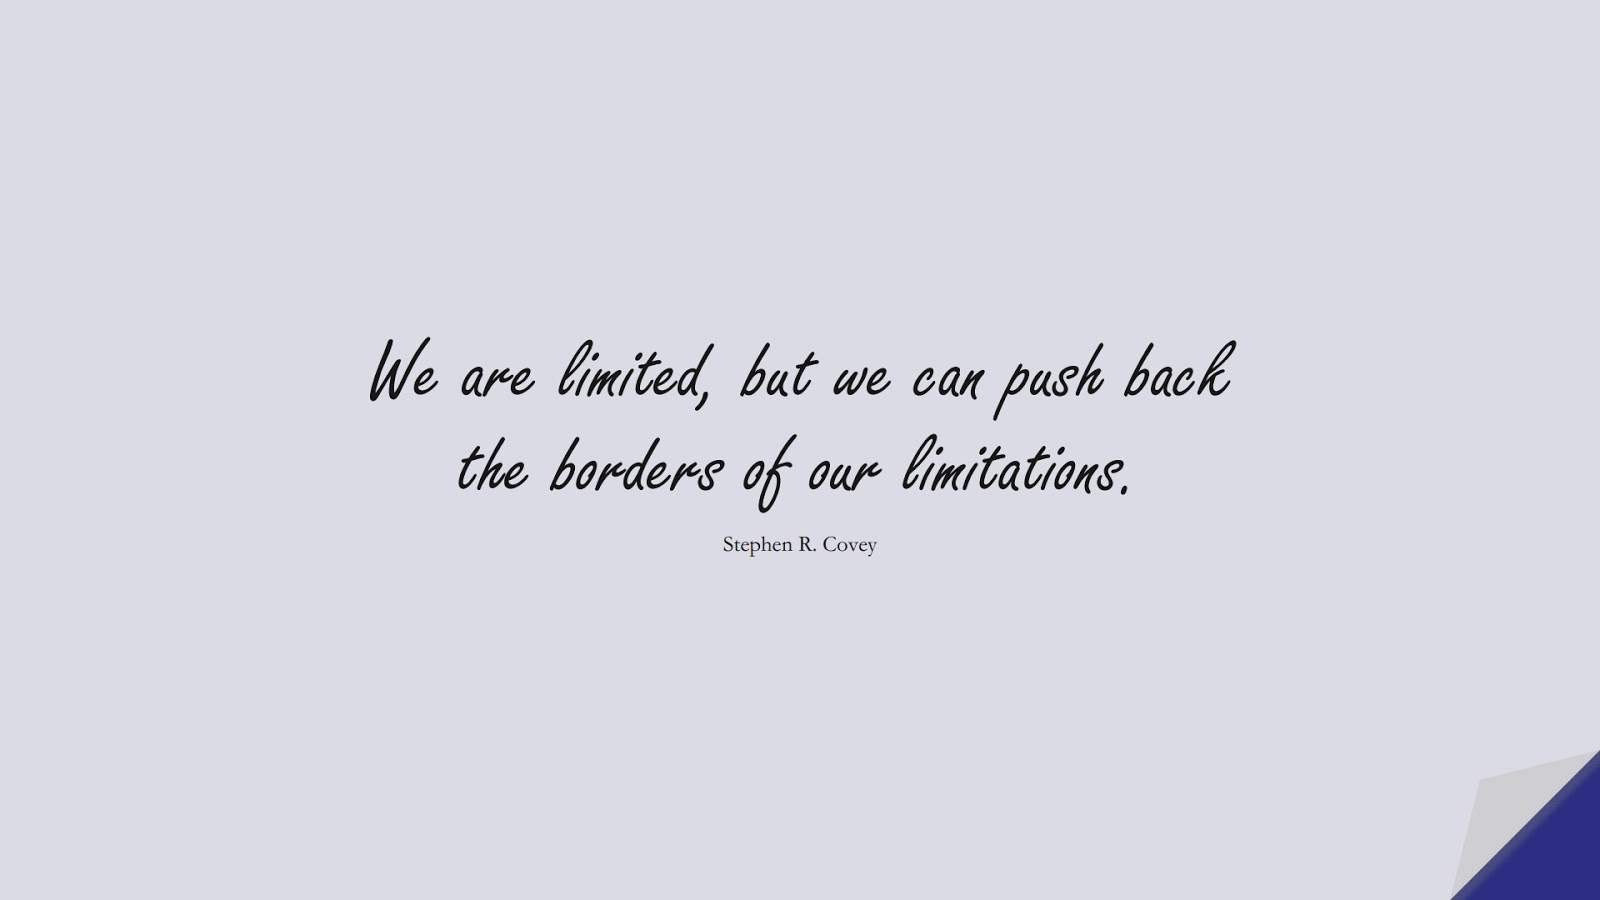 We are limited, but we can push back the borders of our limitations. (Stephen R. Covey);  #PositiveQuotes